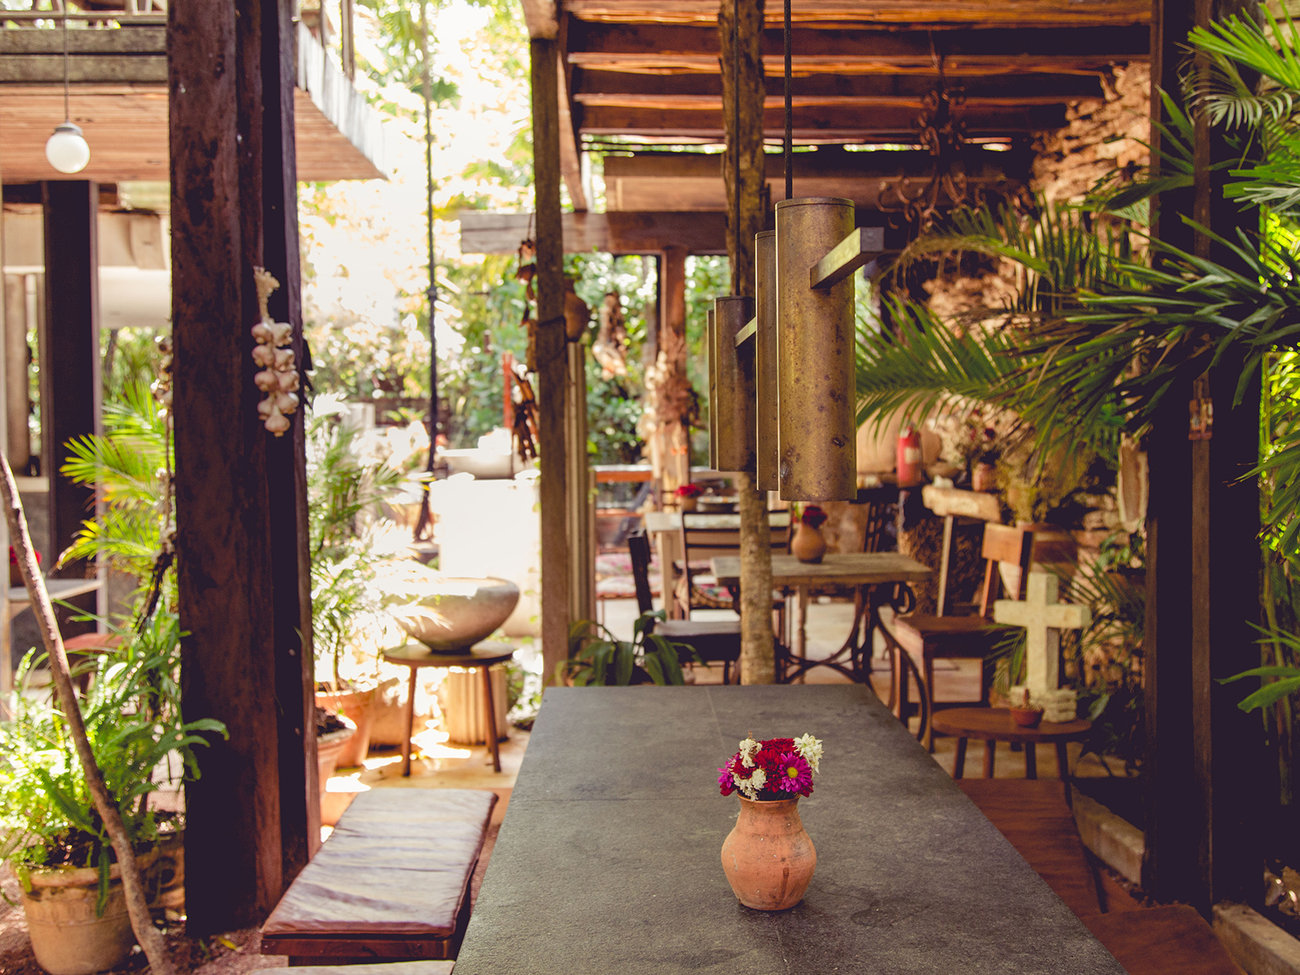 Casa Jaguar Restaurant in Tulum